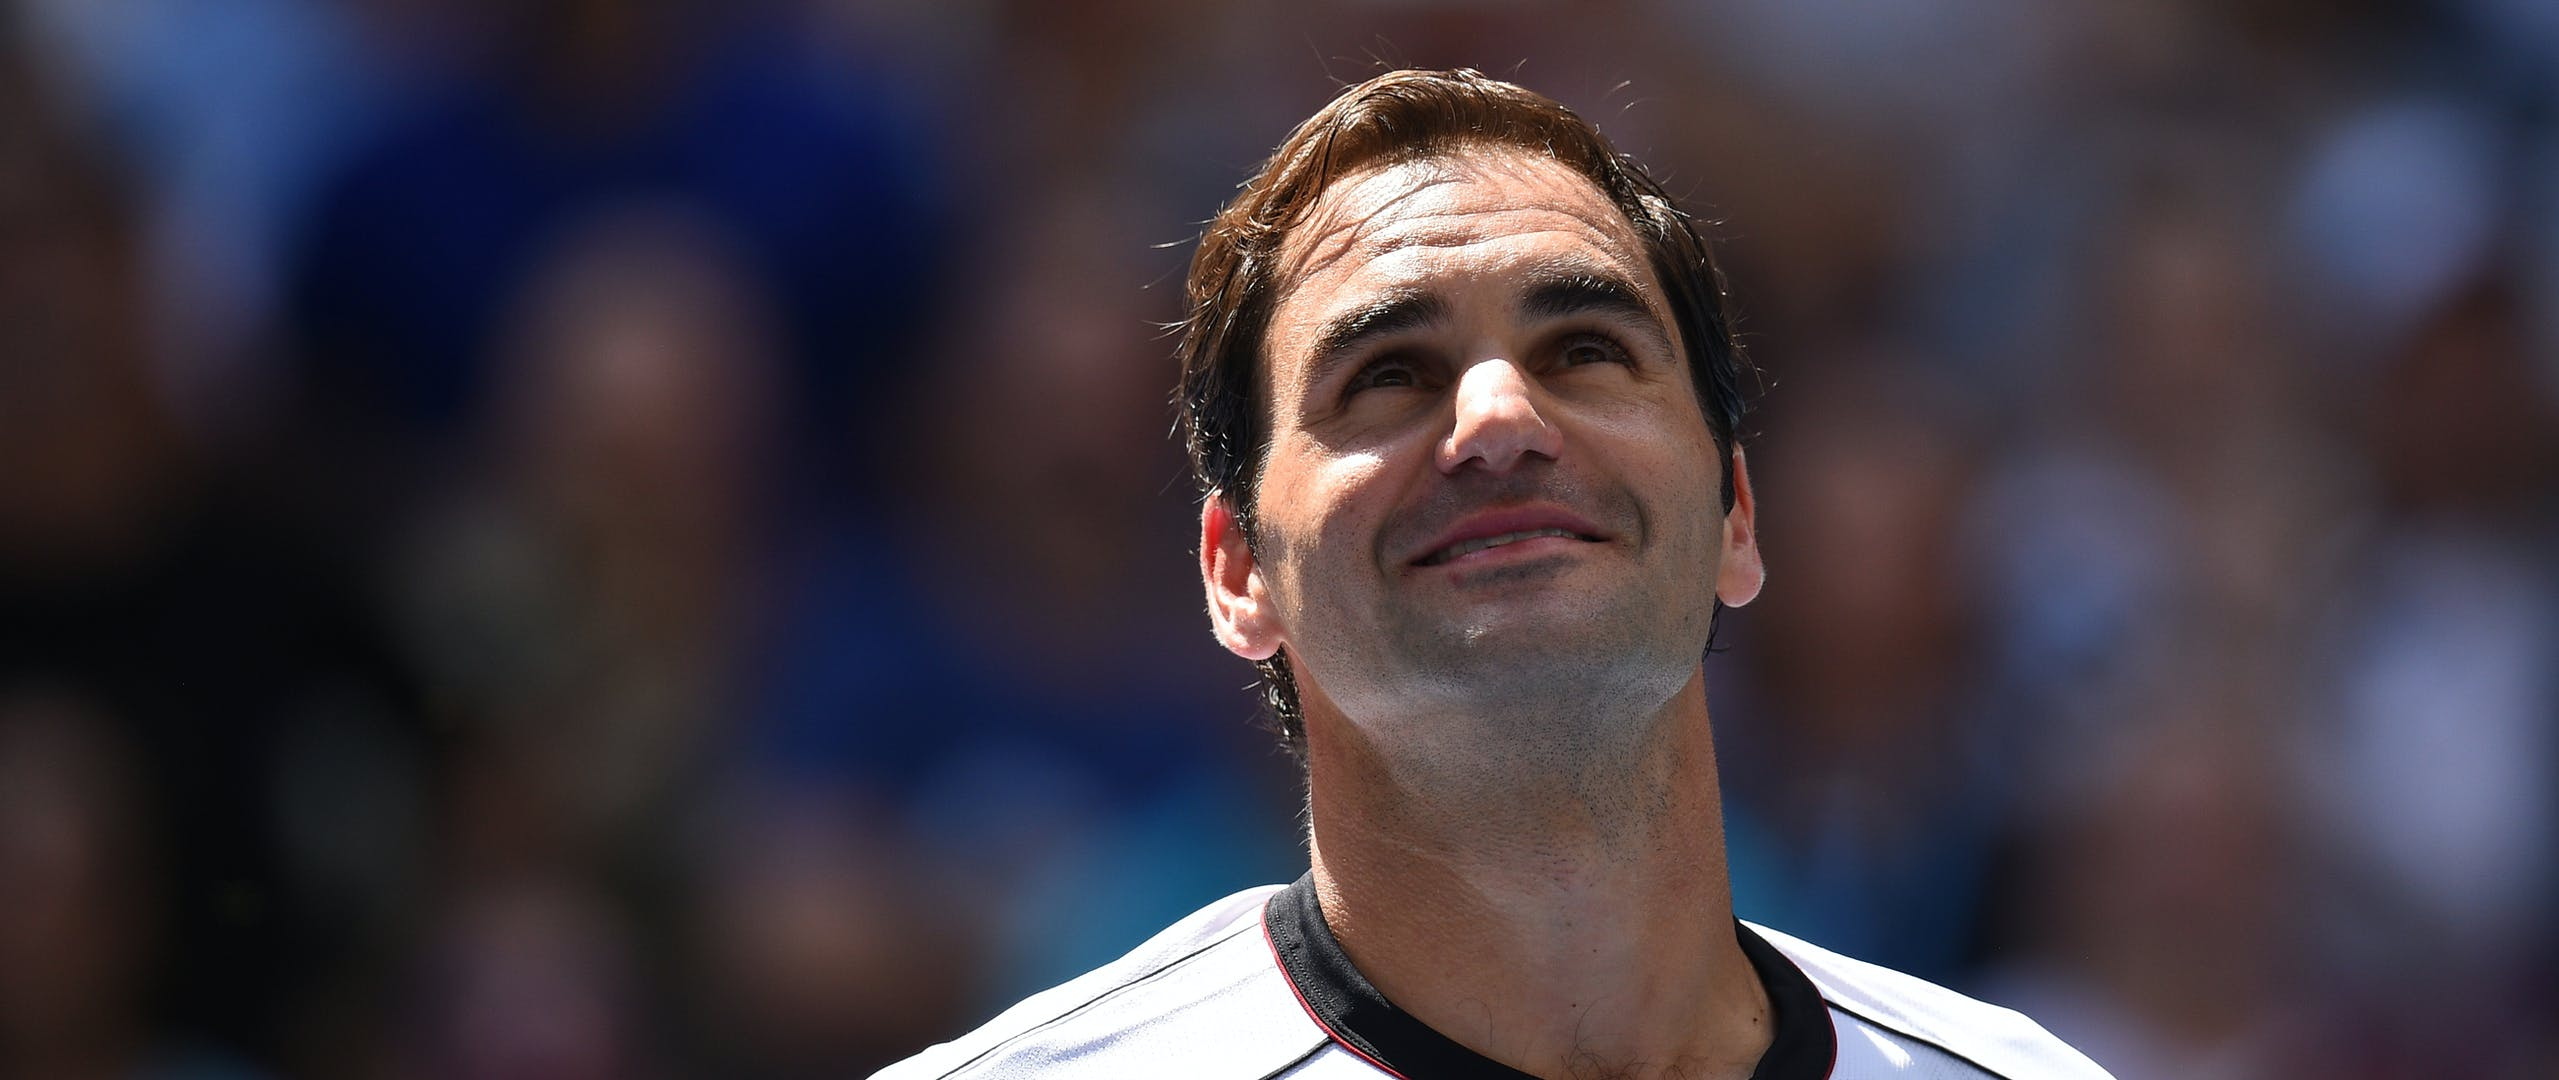 Roger Federer with a large smile on his face